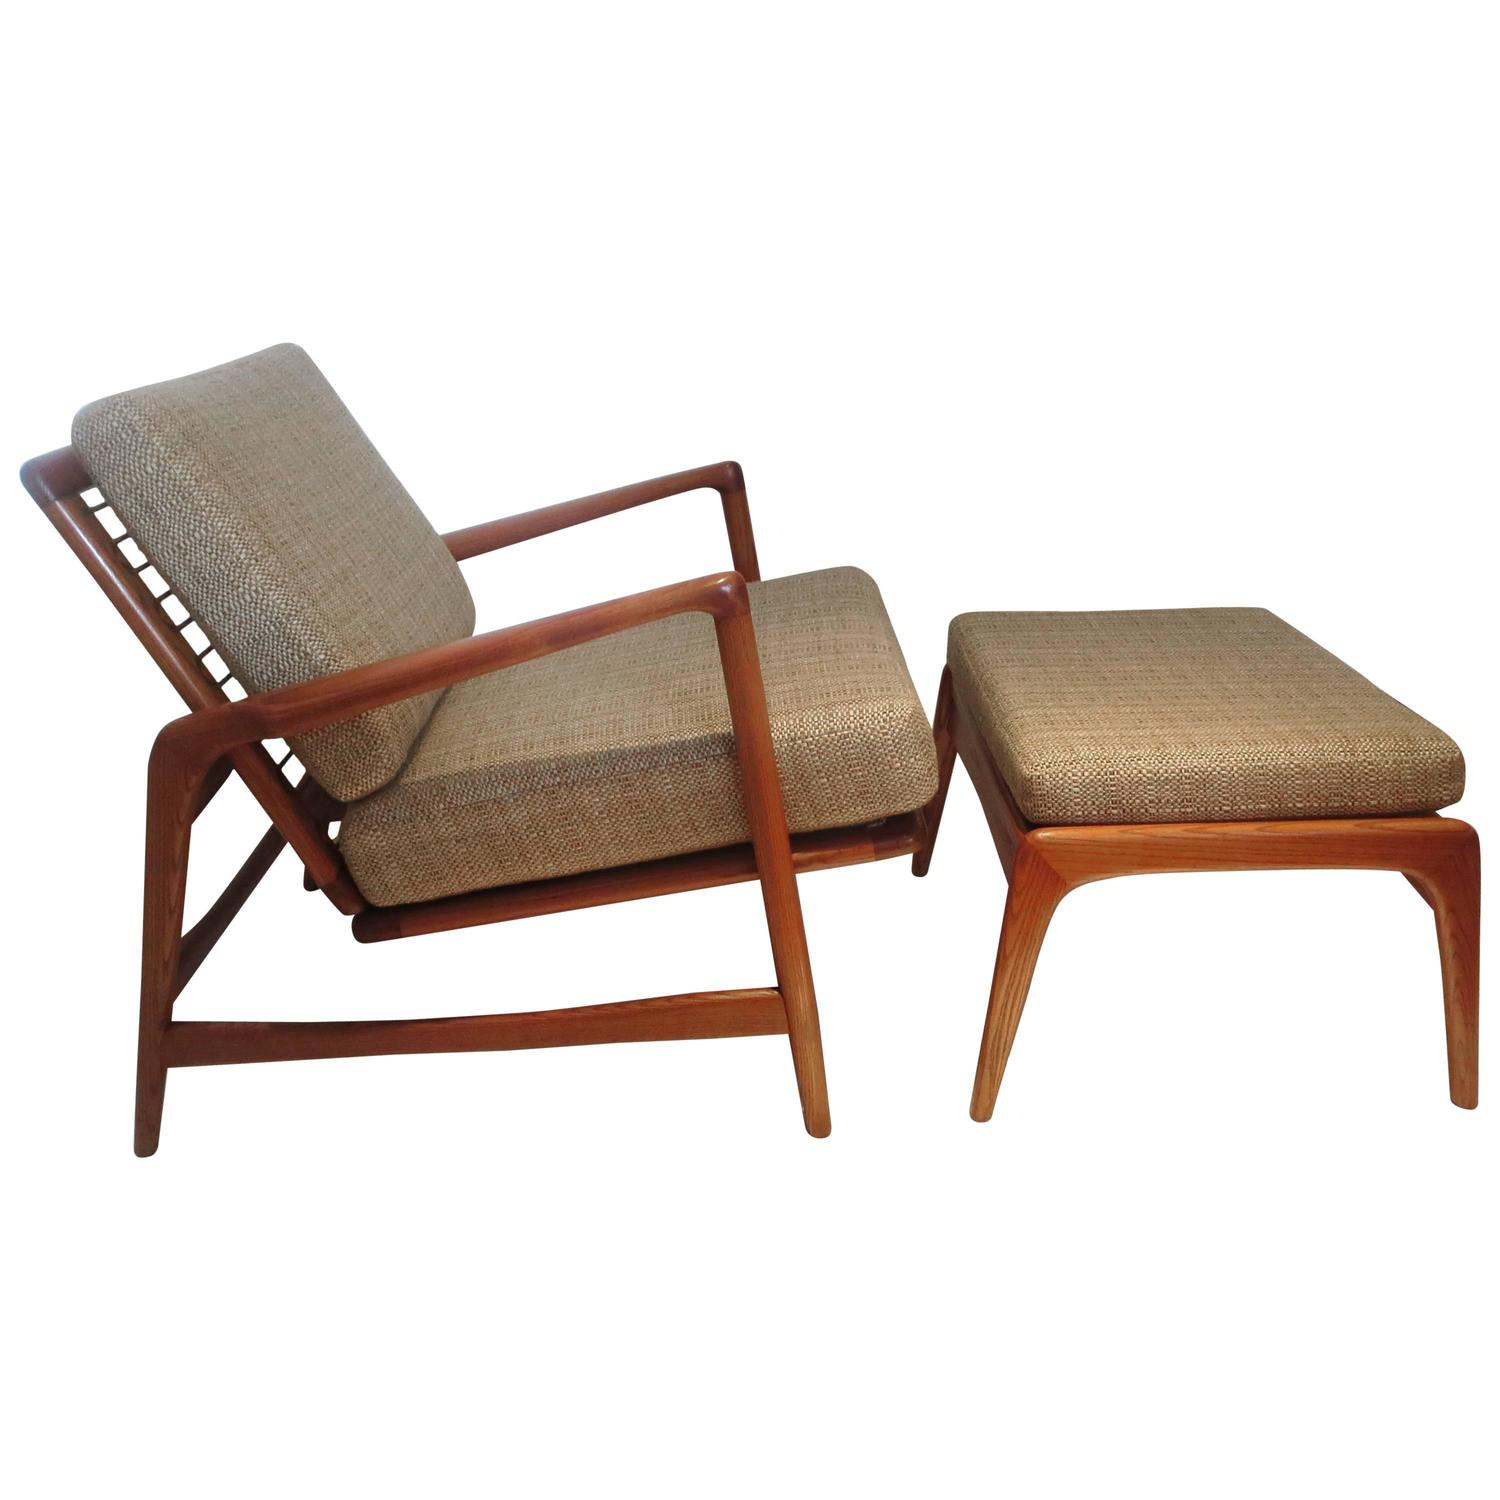 Modern Lounge Chairs Danish Modern Reclining Lounge Chair Multipositions And